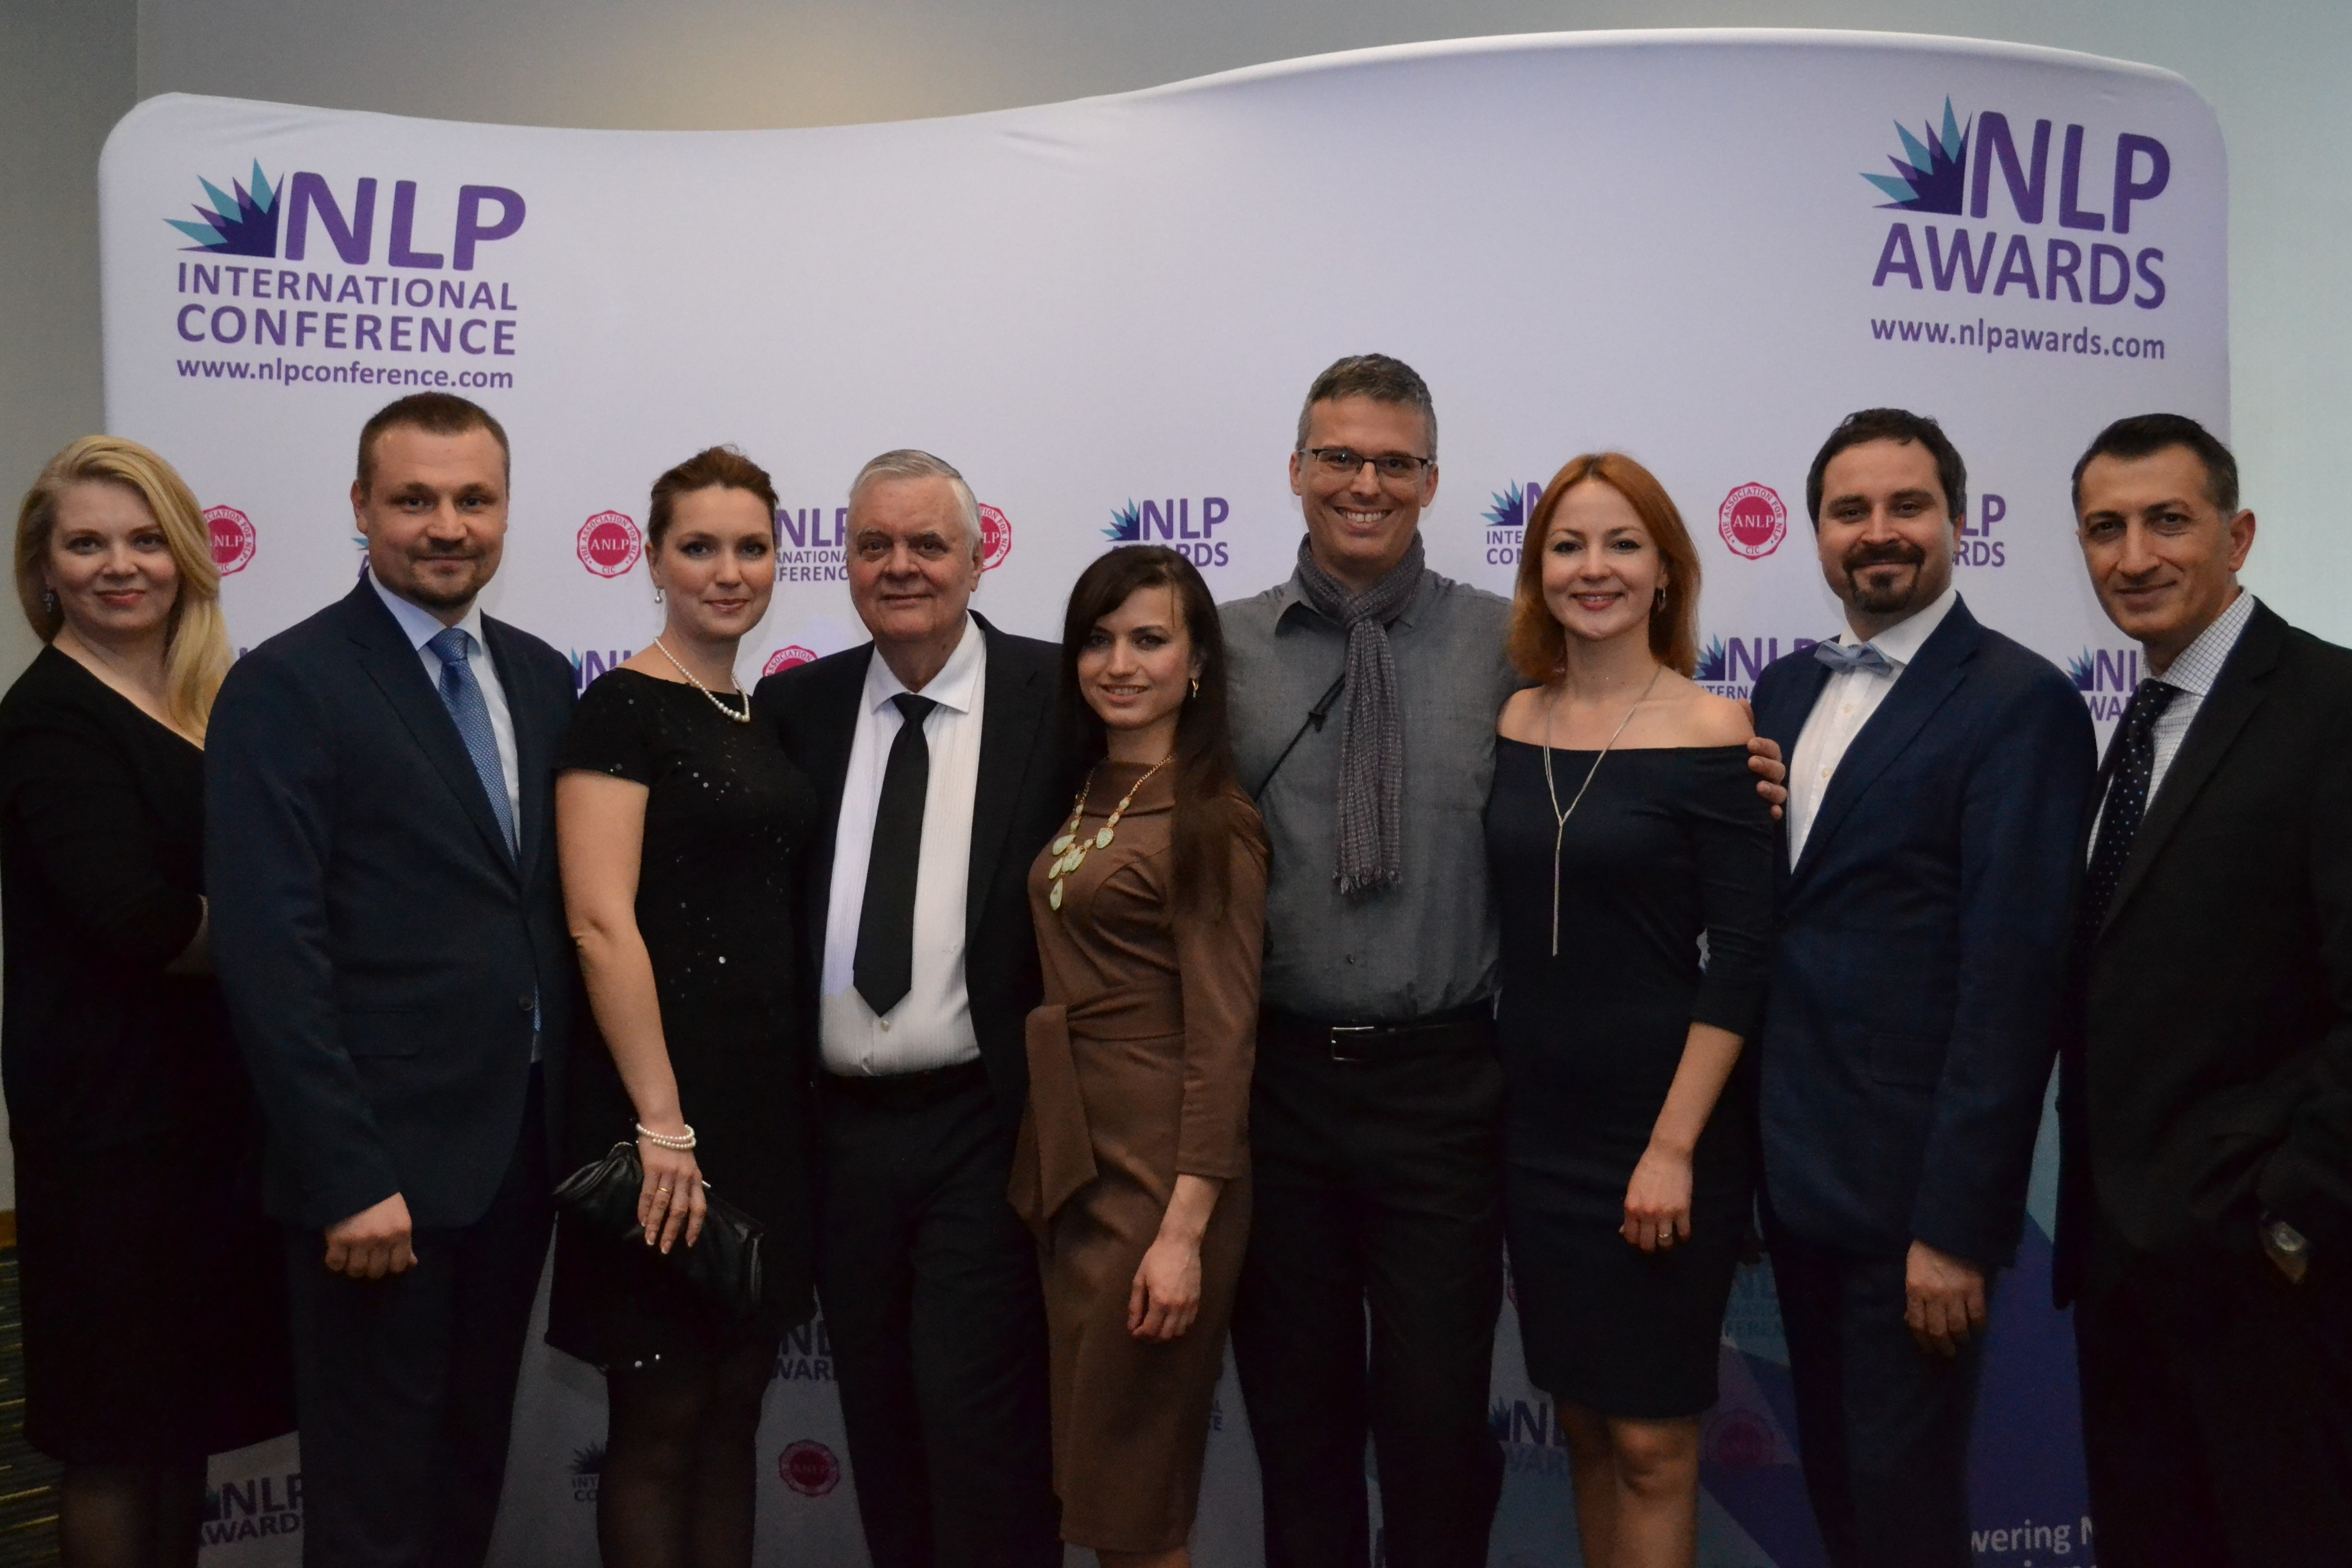 NLP Awards event